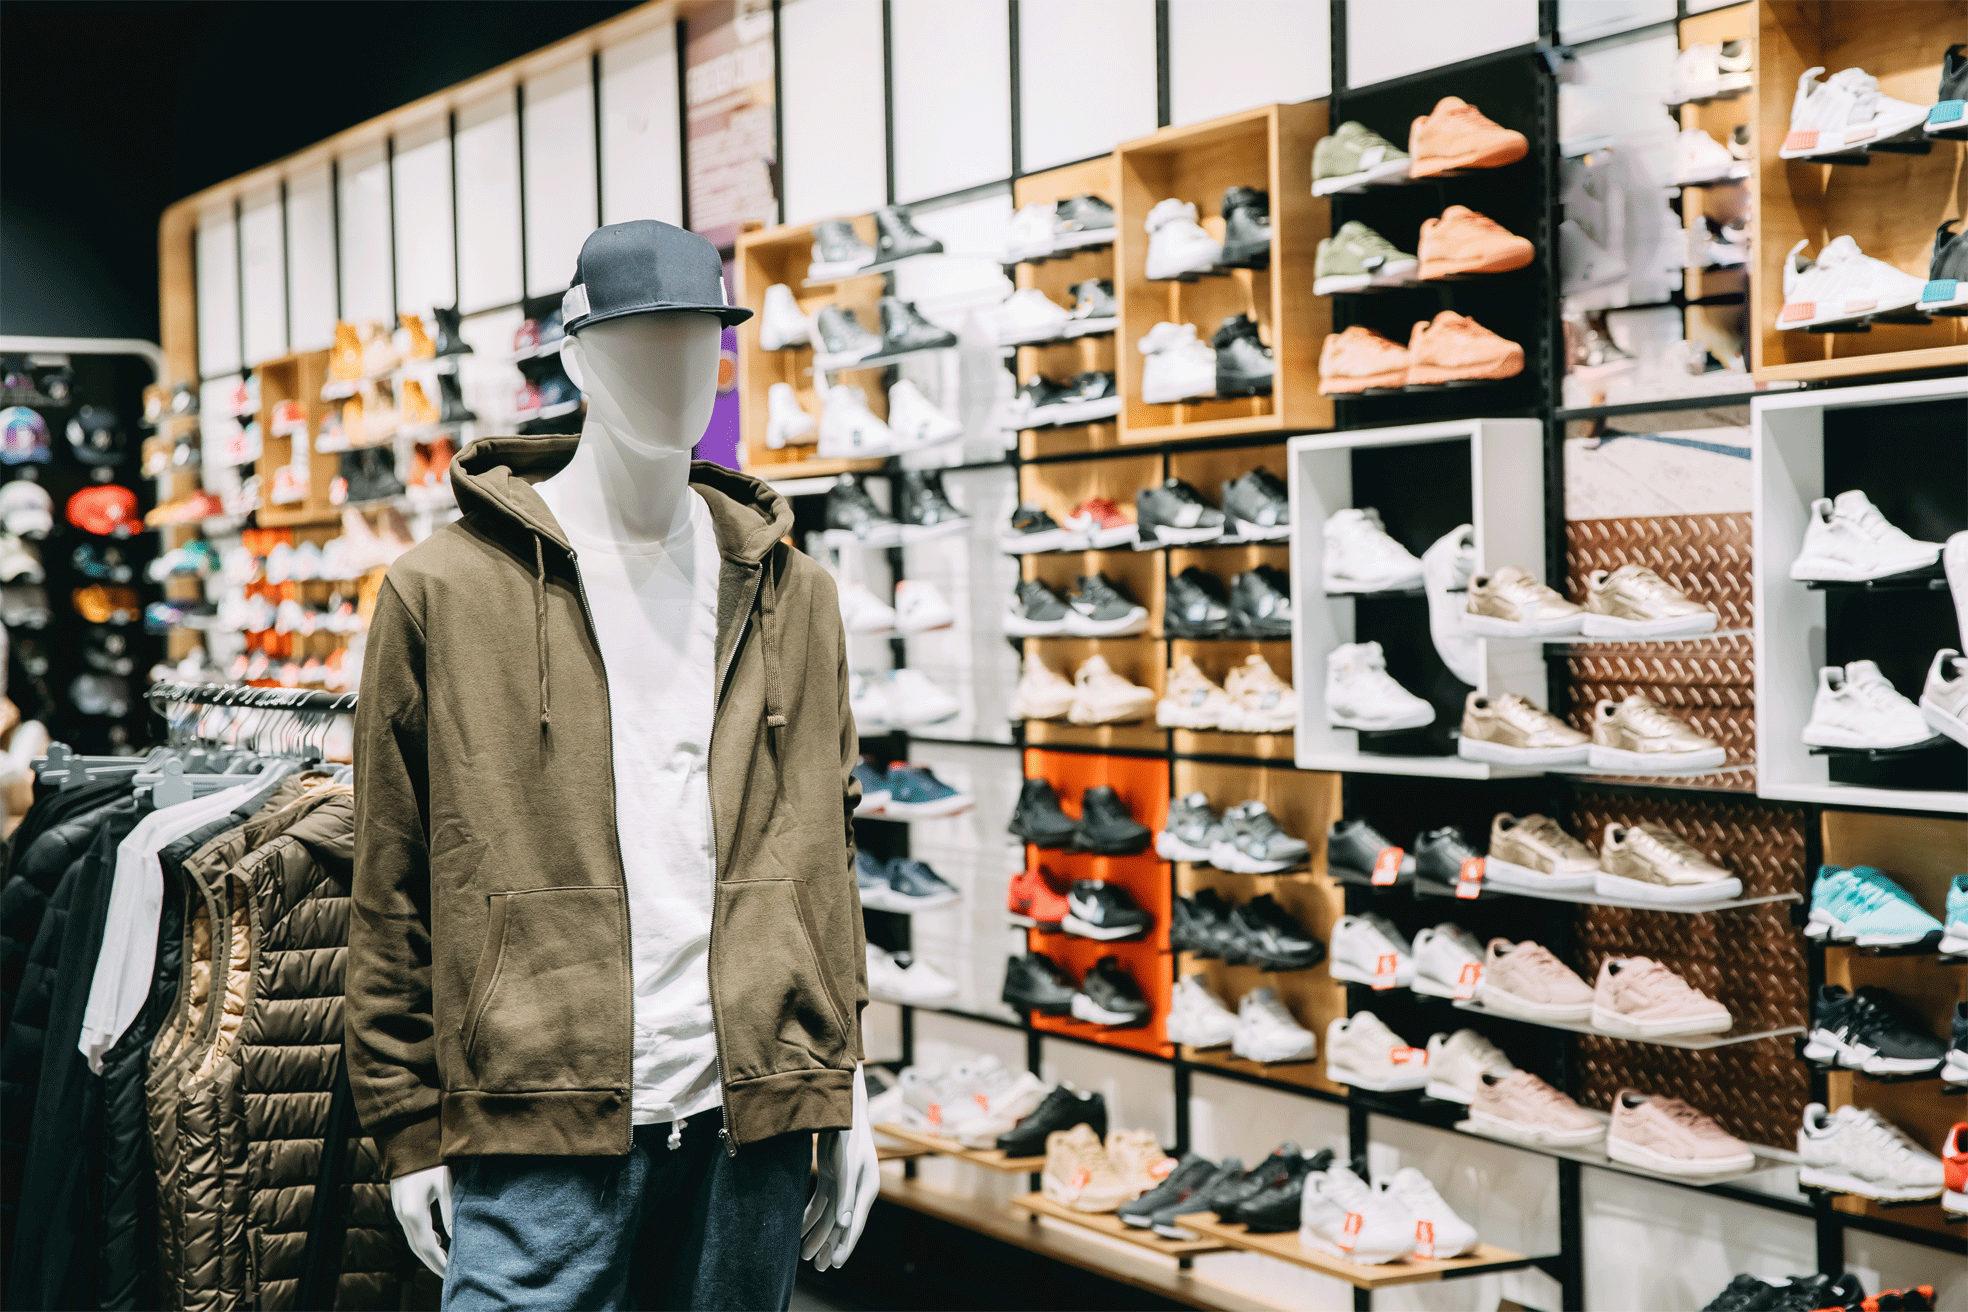 Retail store with shoe section image